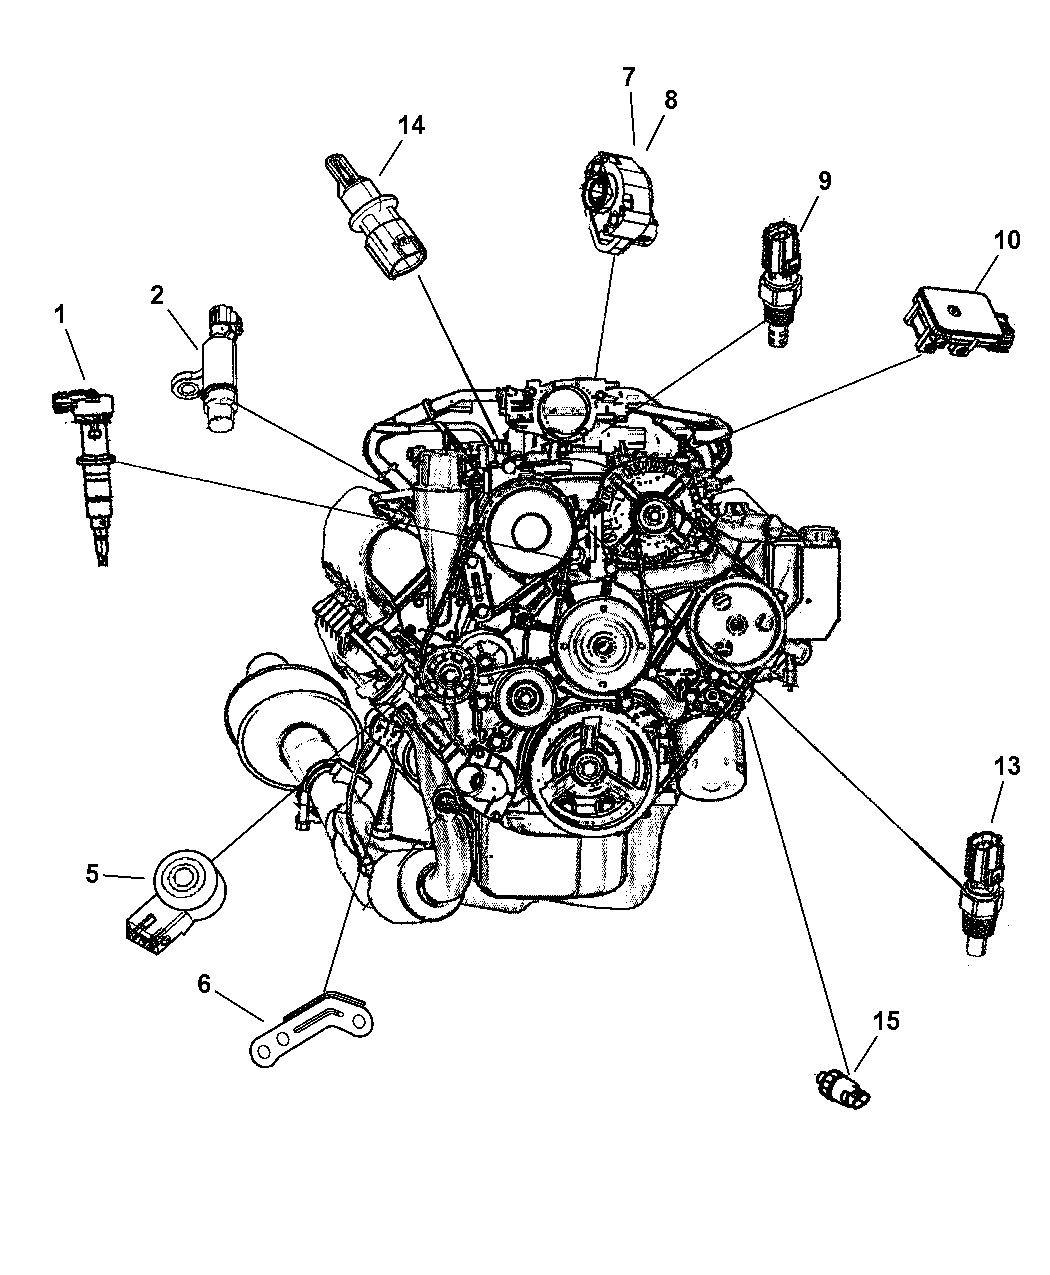 00009 likewise Air Filter additionally P 0996b43f80375dca together with P 0996b43f80376004 further 696 Bottom End. on crankshaft fly engine